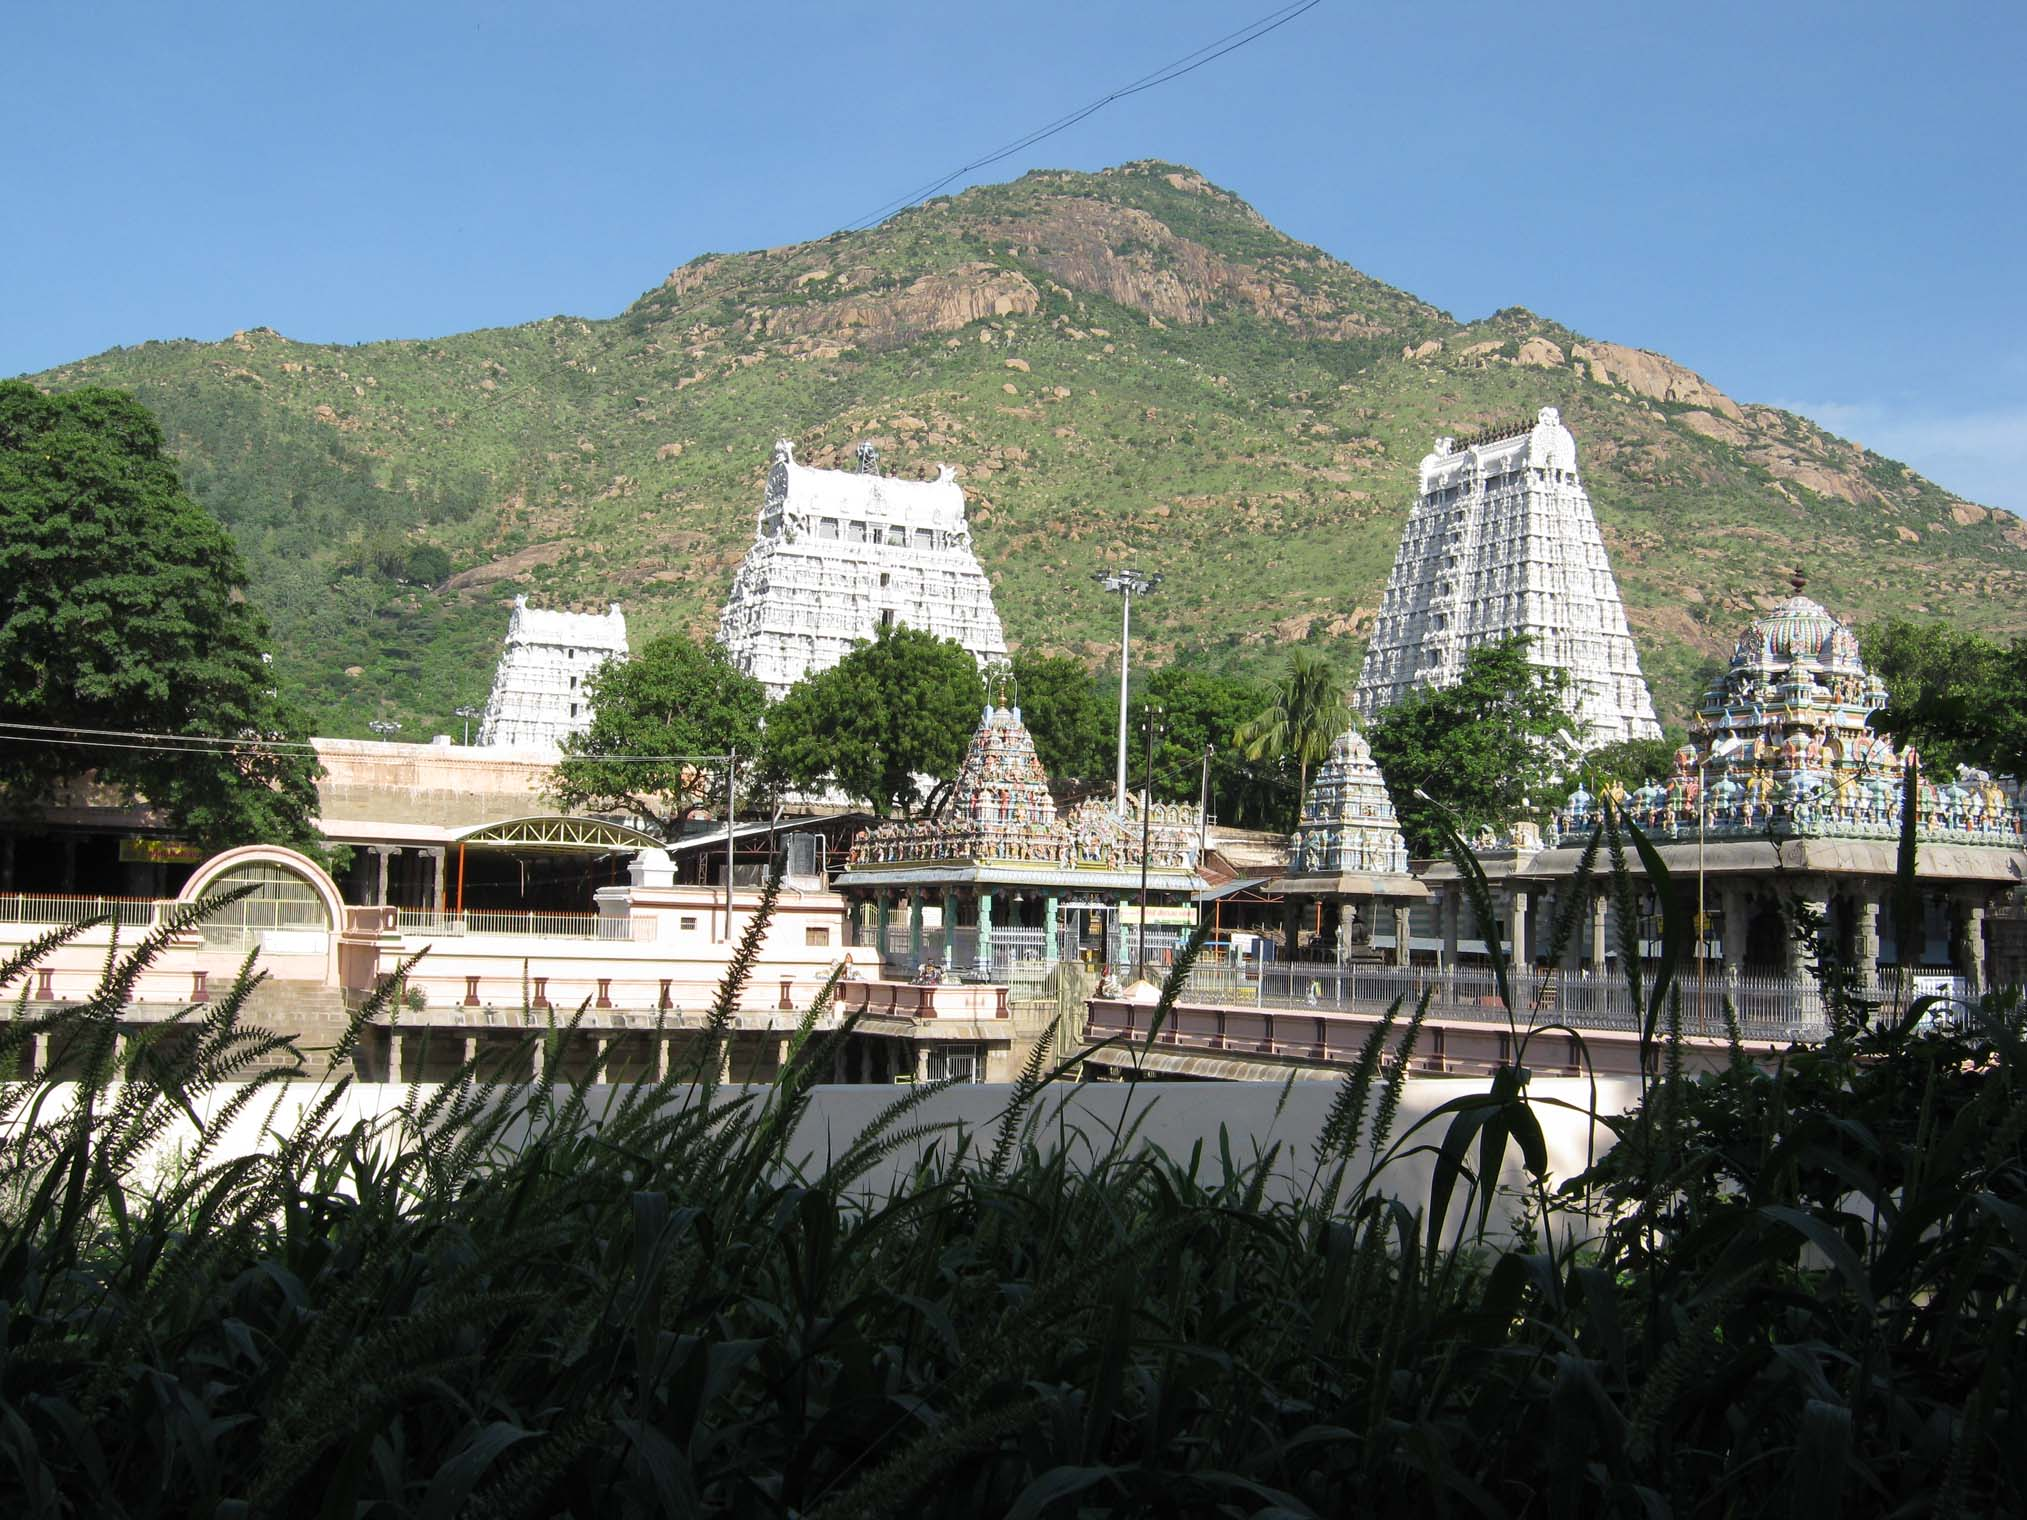 File:Tiruvannamalai Temple 1.jpg - Wikipedia, the free encyclopedia